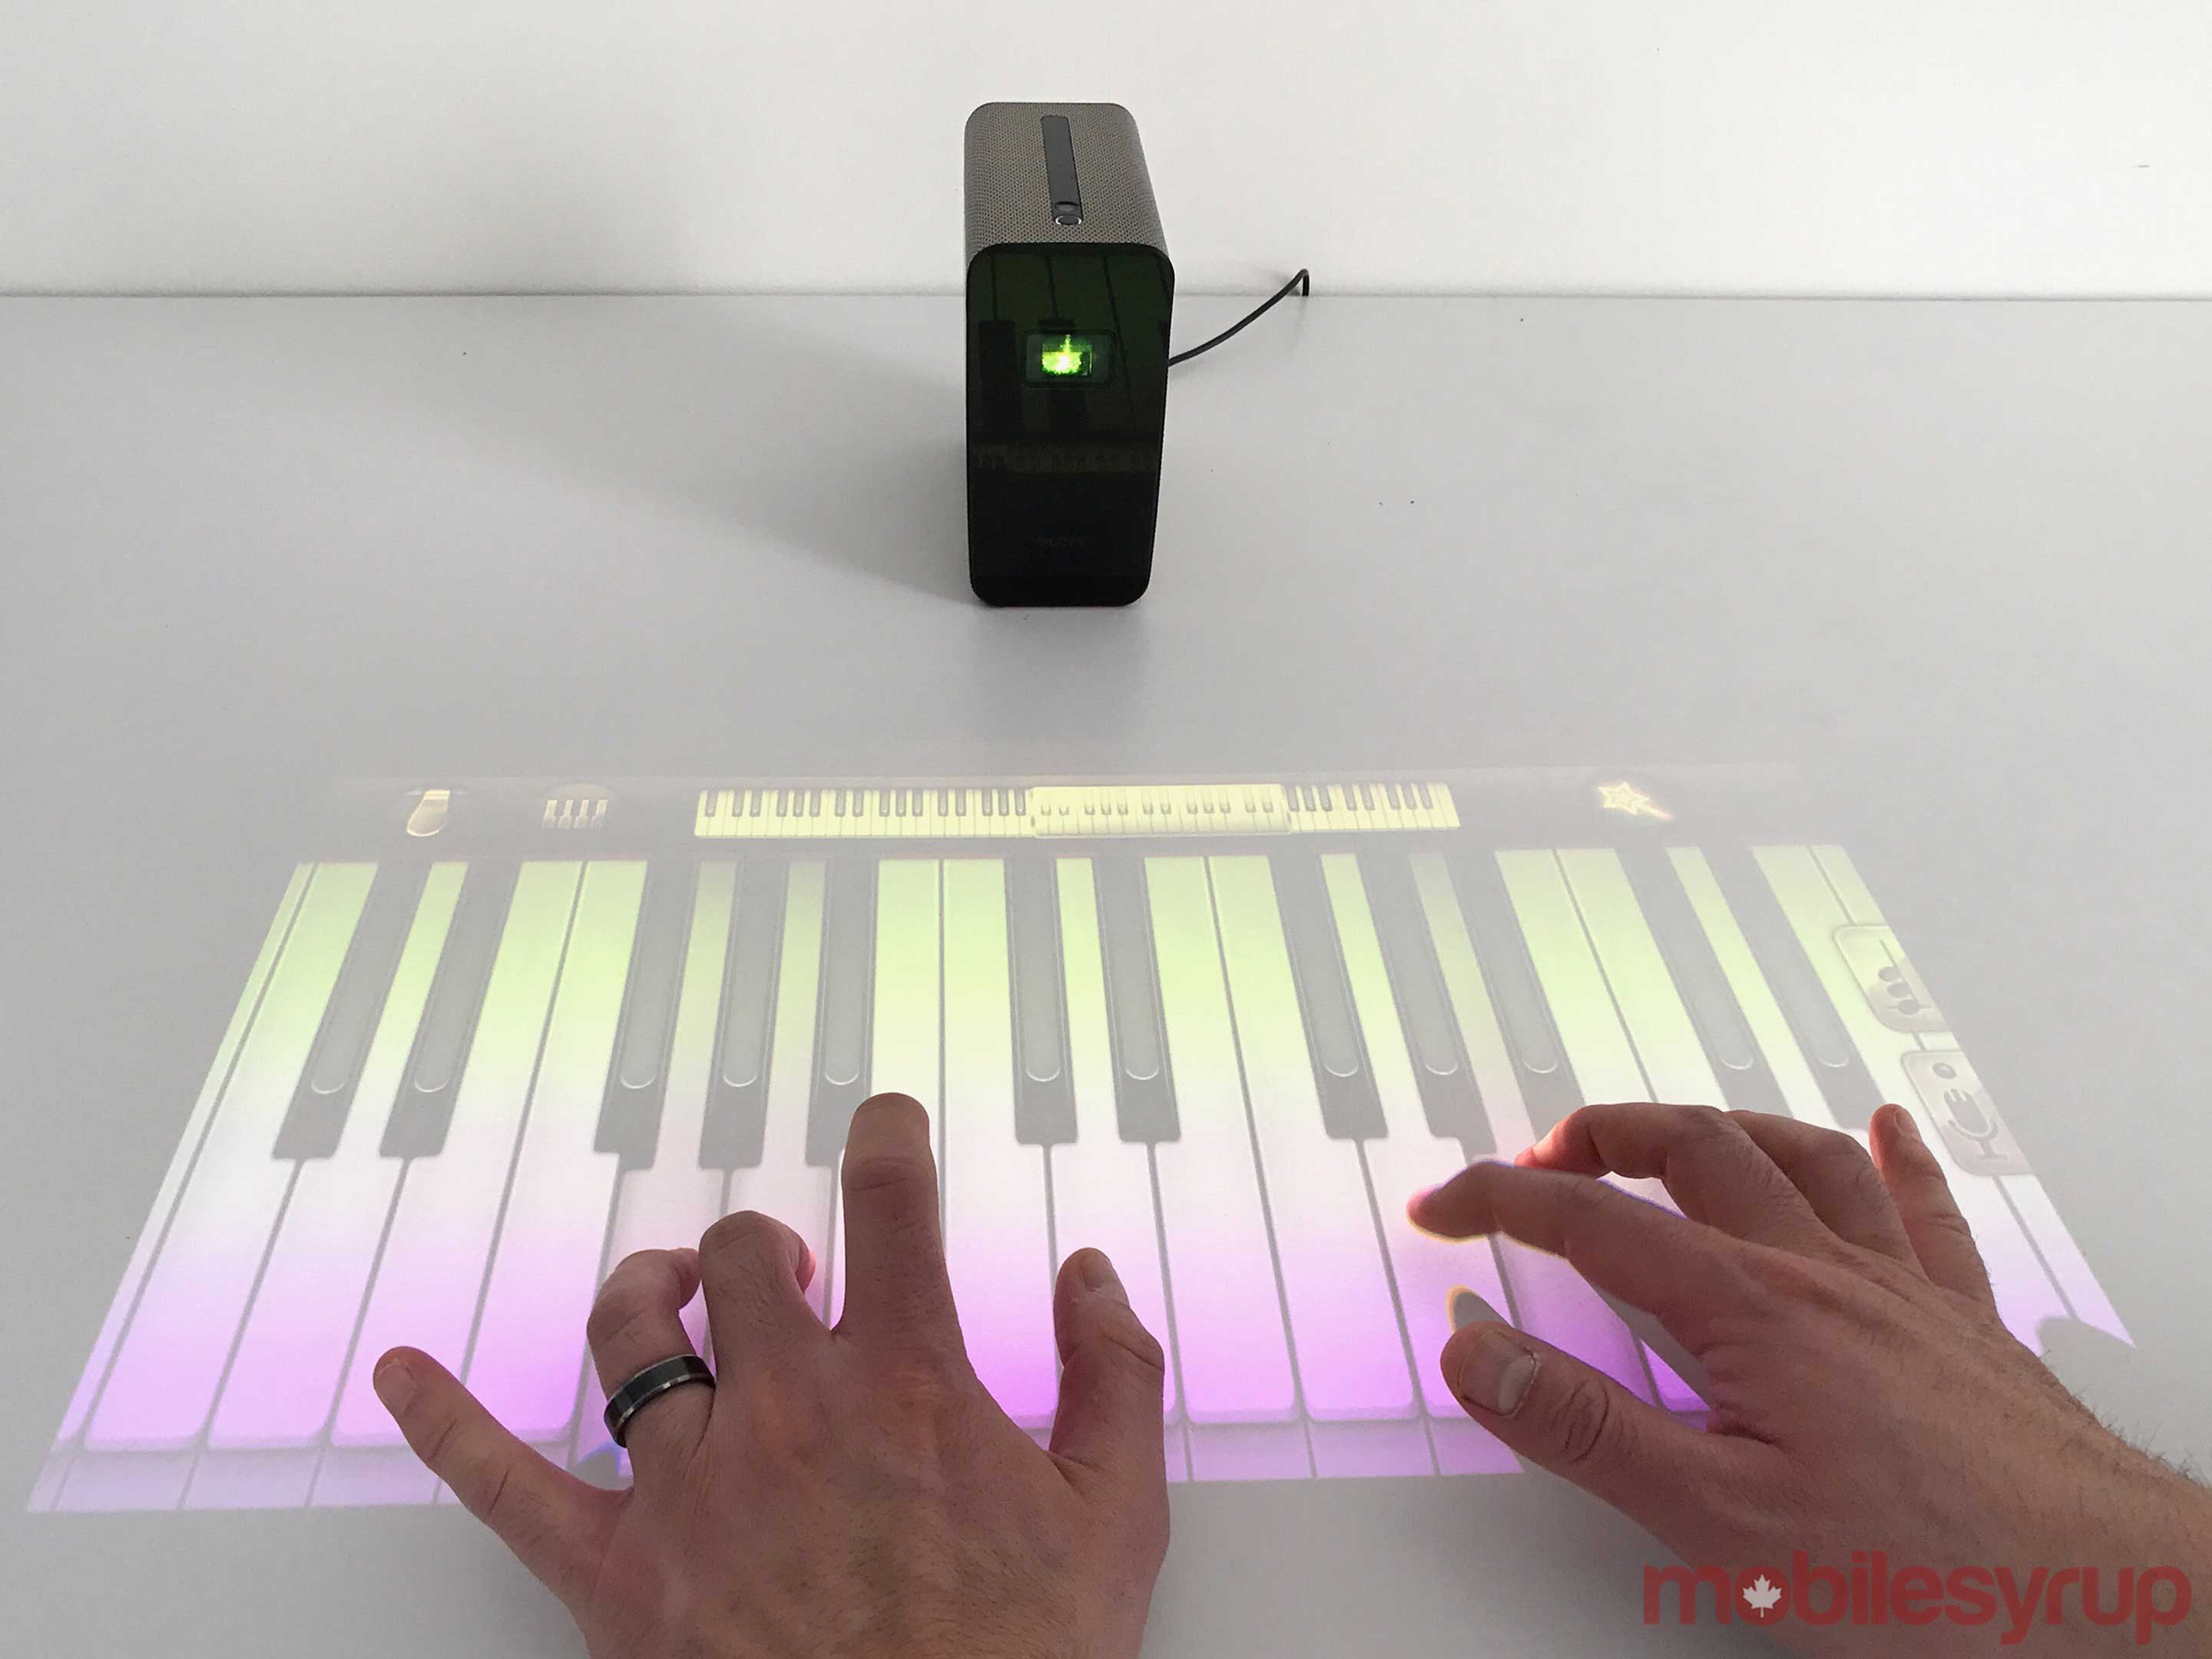 Xperia Touch keyboard